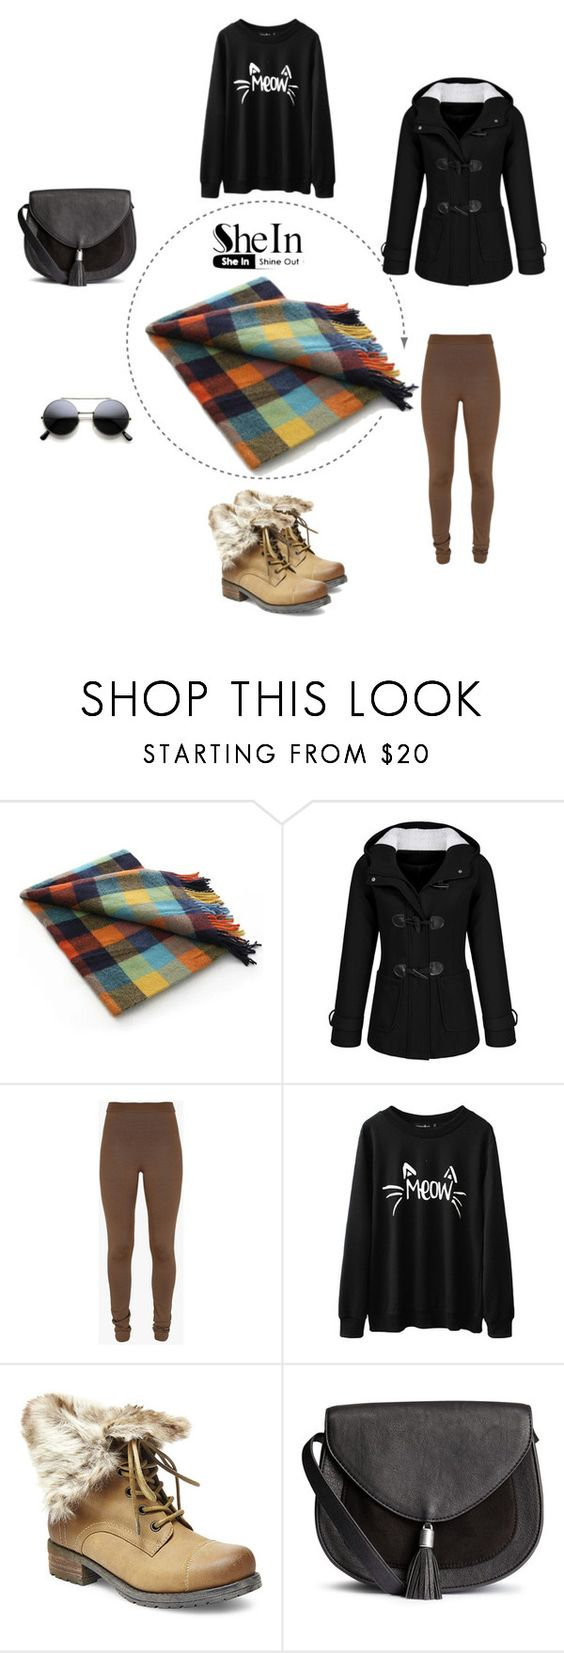 """""""Multicolor-Plaid-Tassel-Classical-Scarve"""" by dajana92 ❤ liked on Polyvore featuring Balmain, Steve Madden, women's clothing, women's fashion, women, female, woman, misses and juniors"""